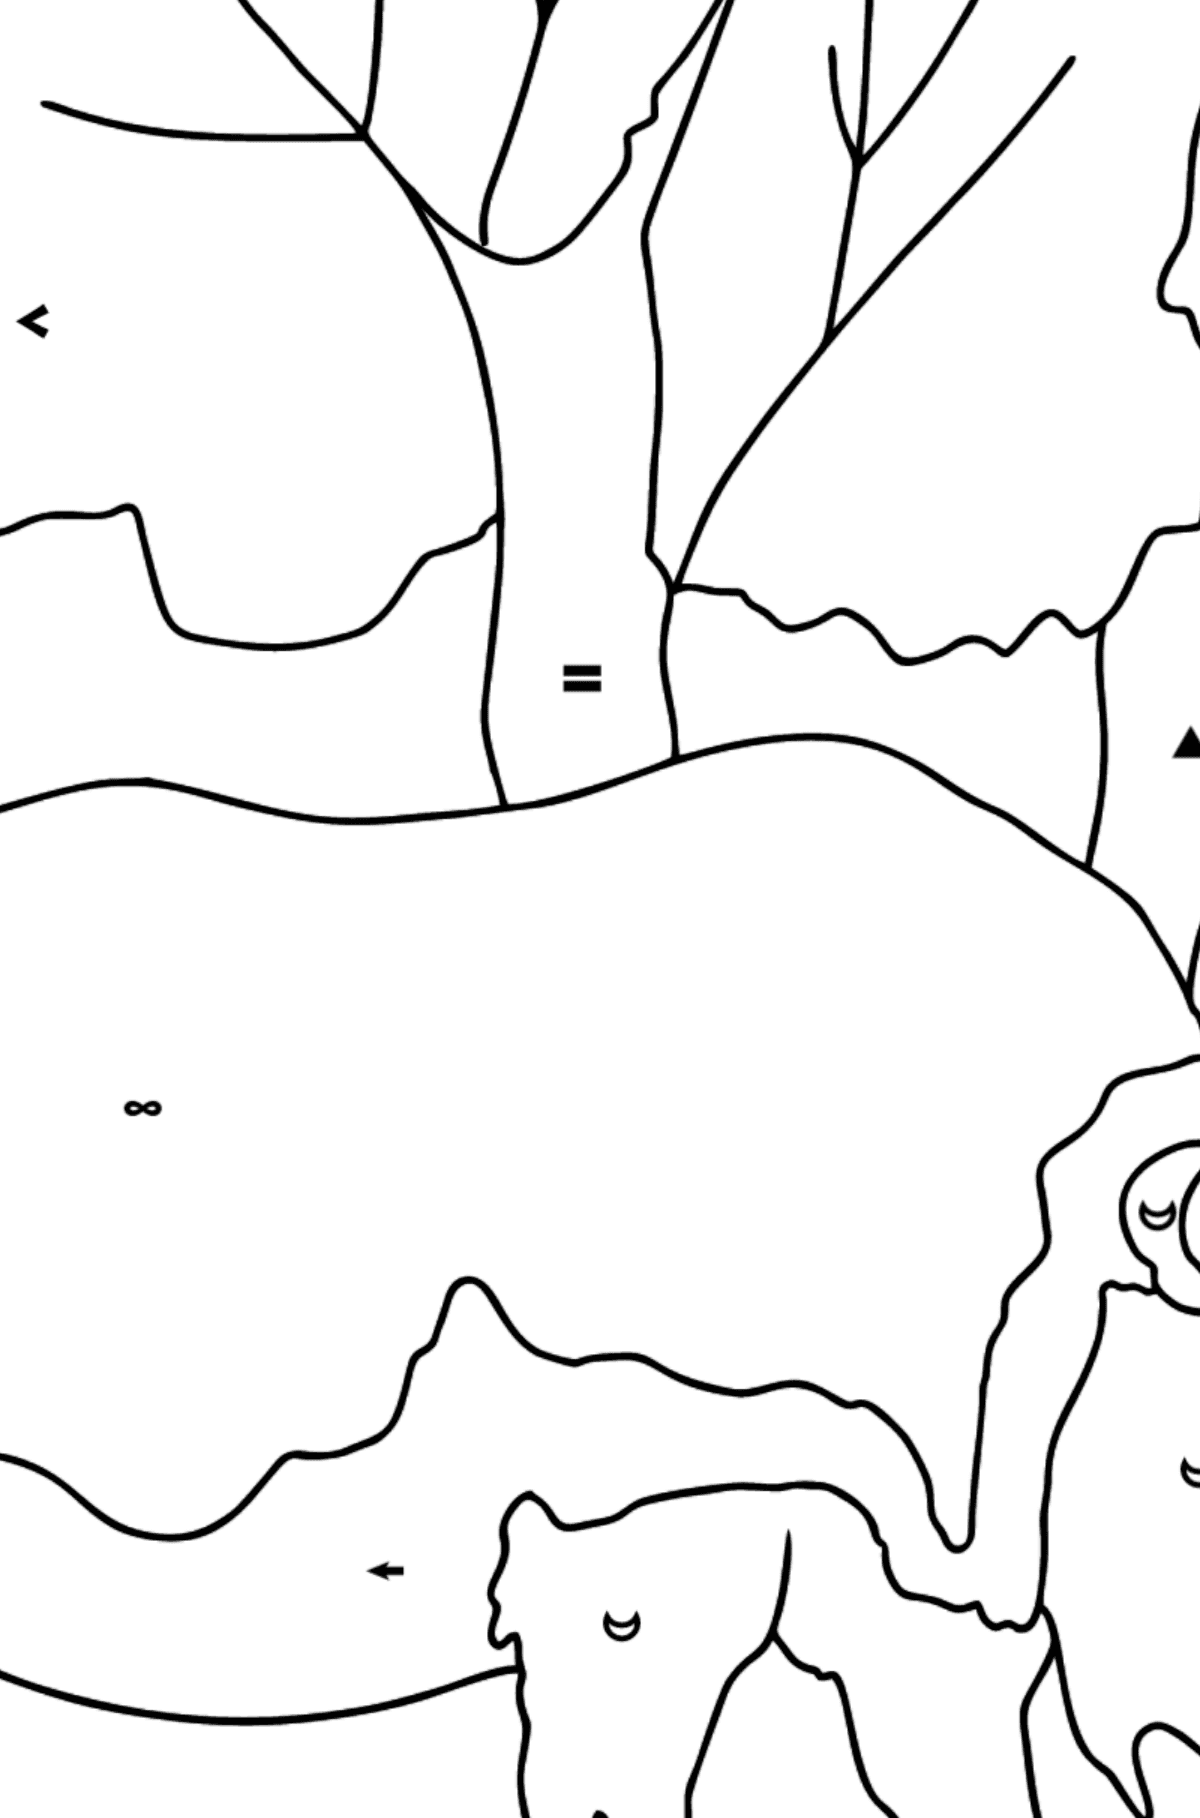 Coloring Page - A Massive Rhino - Coloring by Symbols for Kids